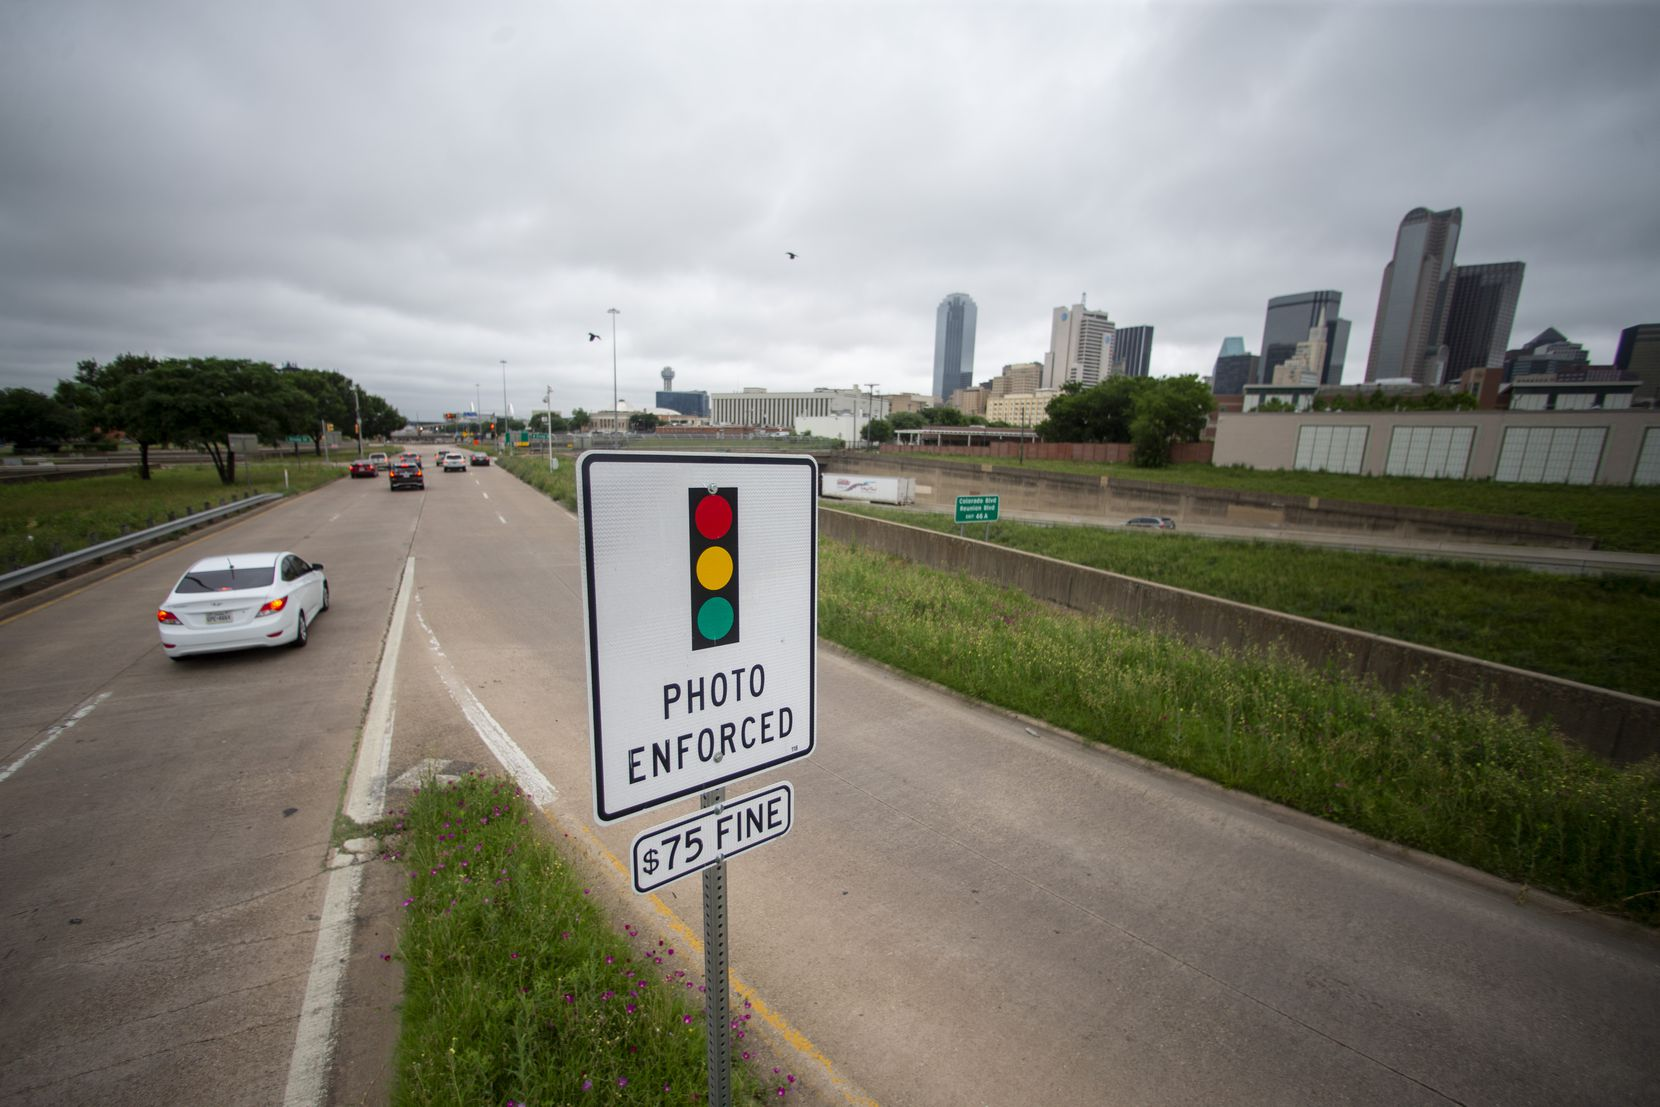 A red light camera warning sign is seen at the corner of South St. Paul Street and Griffin Street in Dallas on Wednesday, June 5, 2019.